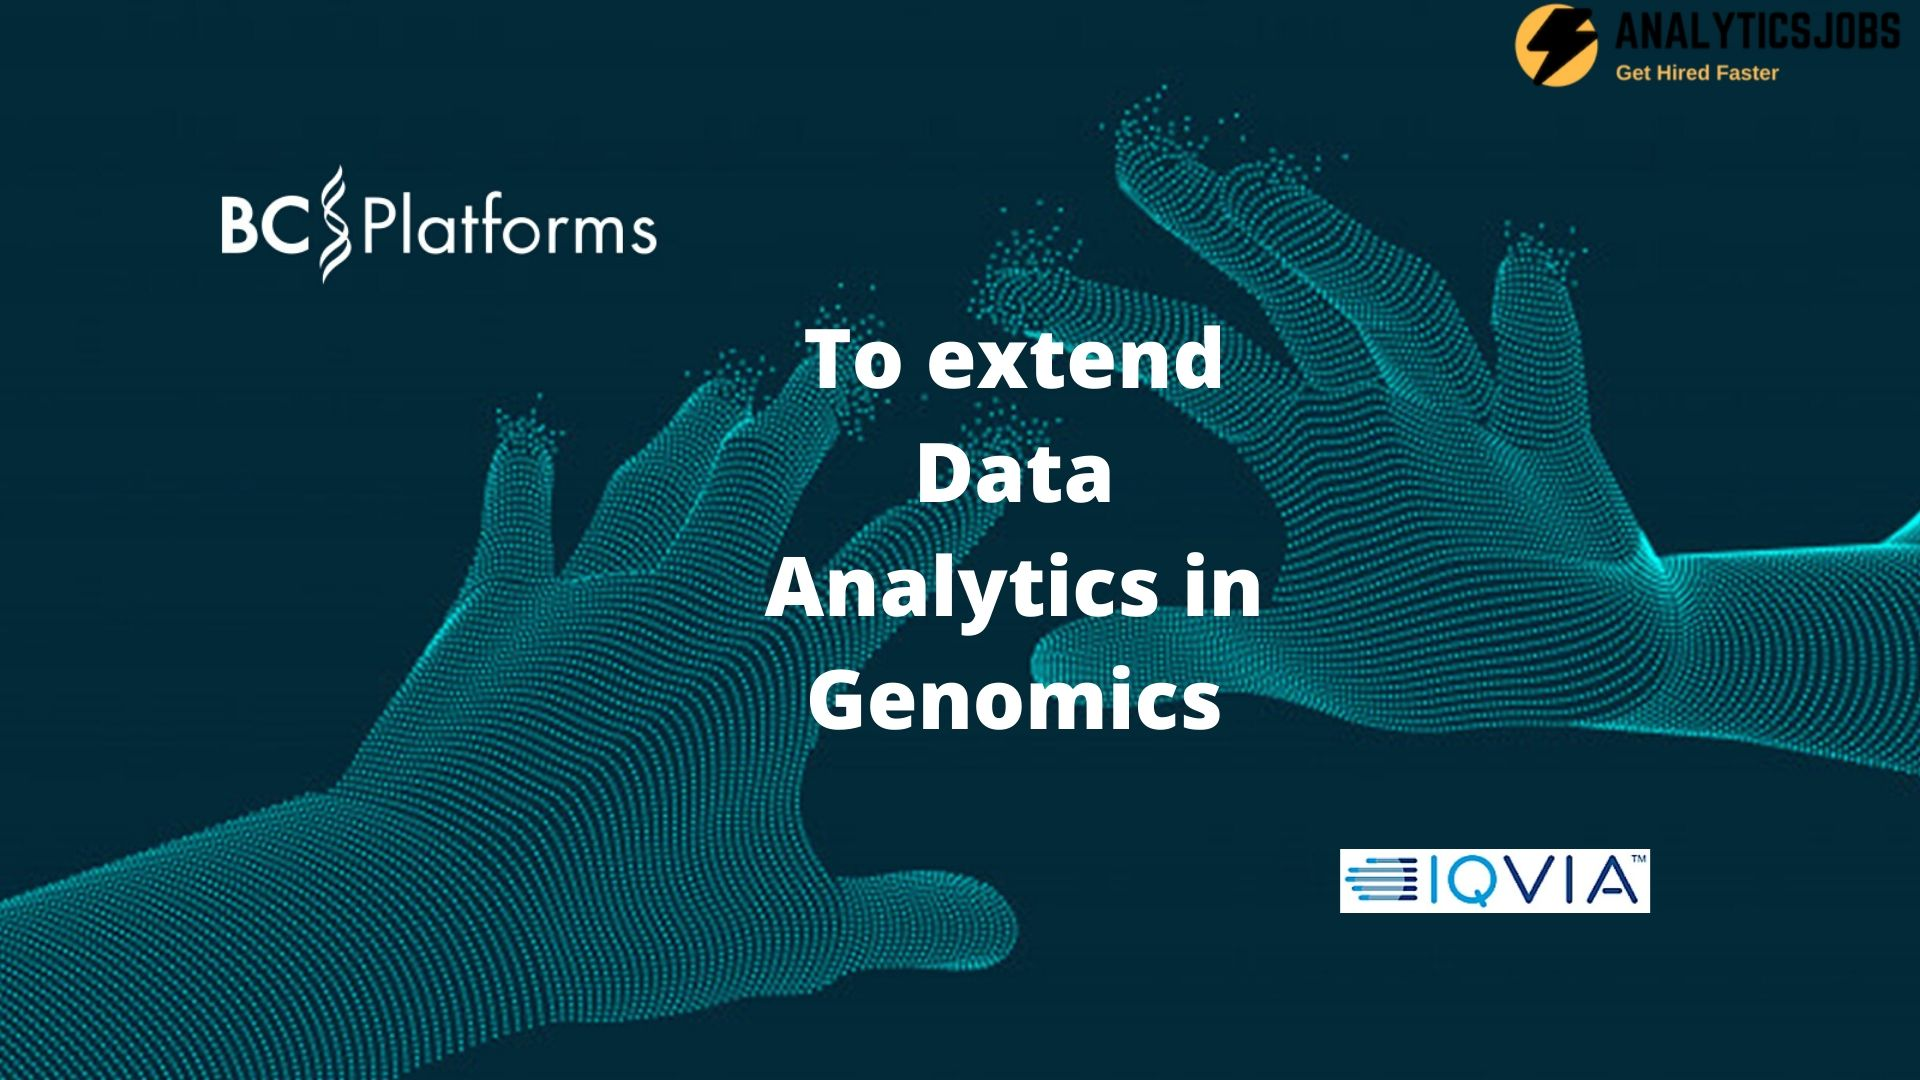 To extend Data Analytics in genomics, BC Platforms has collaborated with IQVIA